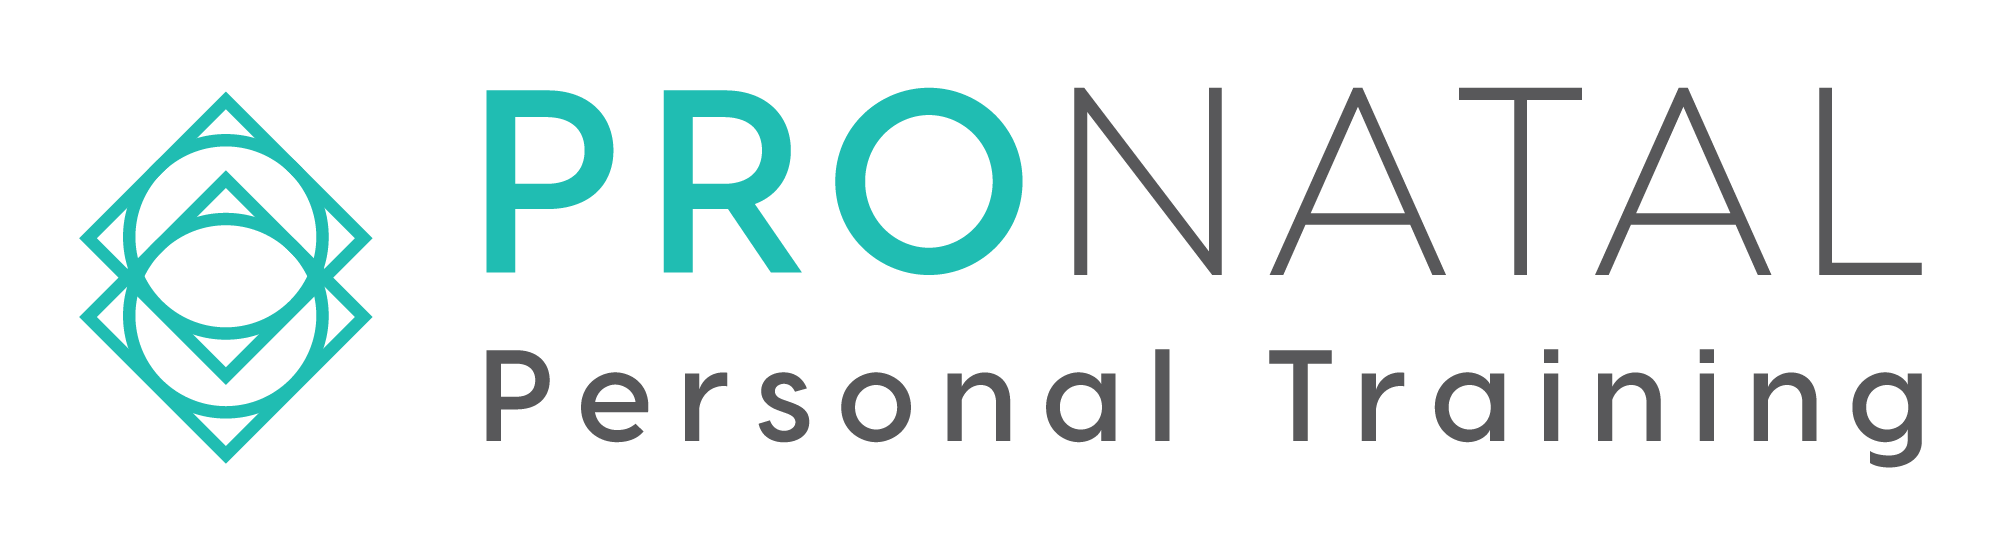 ProNatal Personal Training